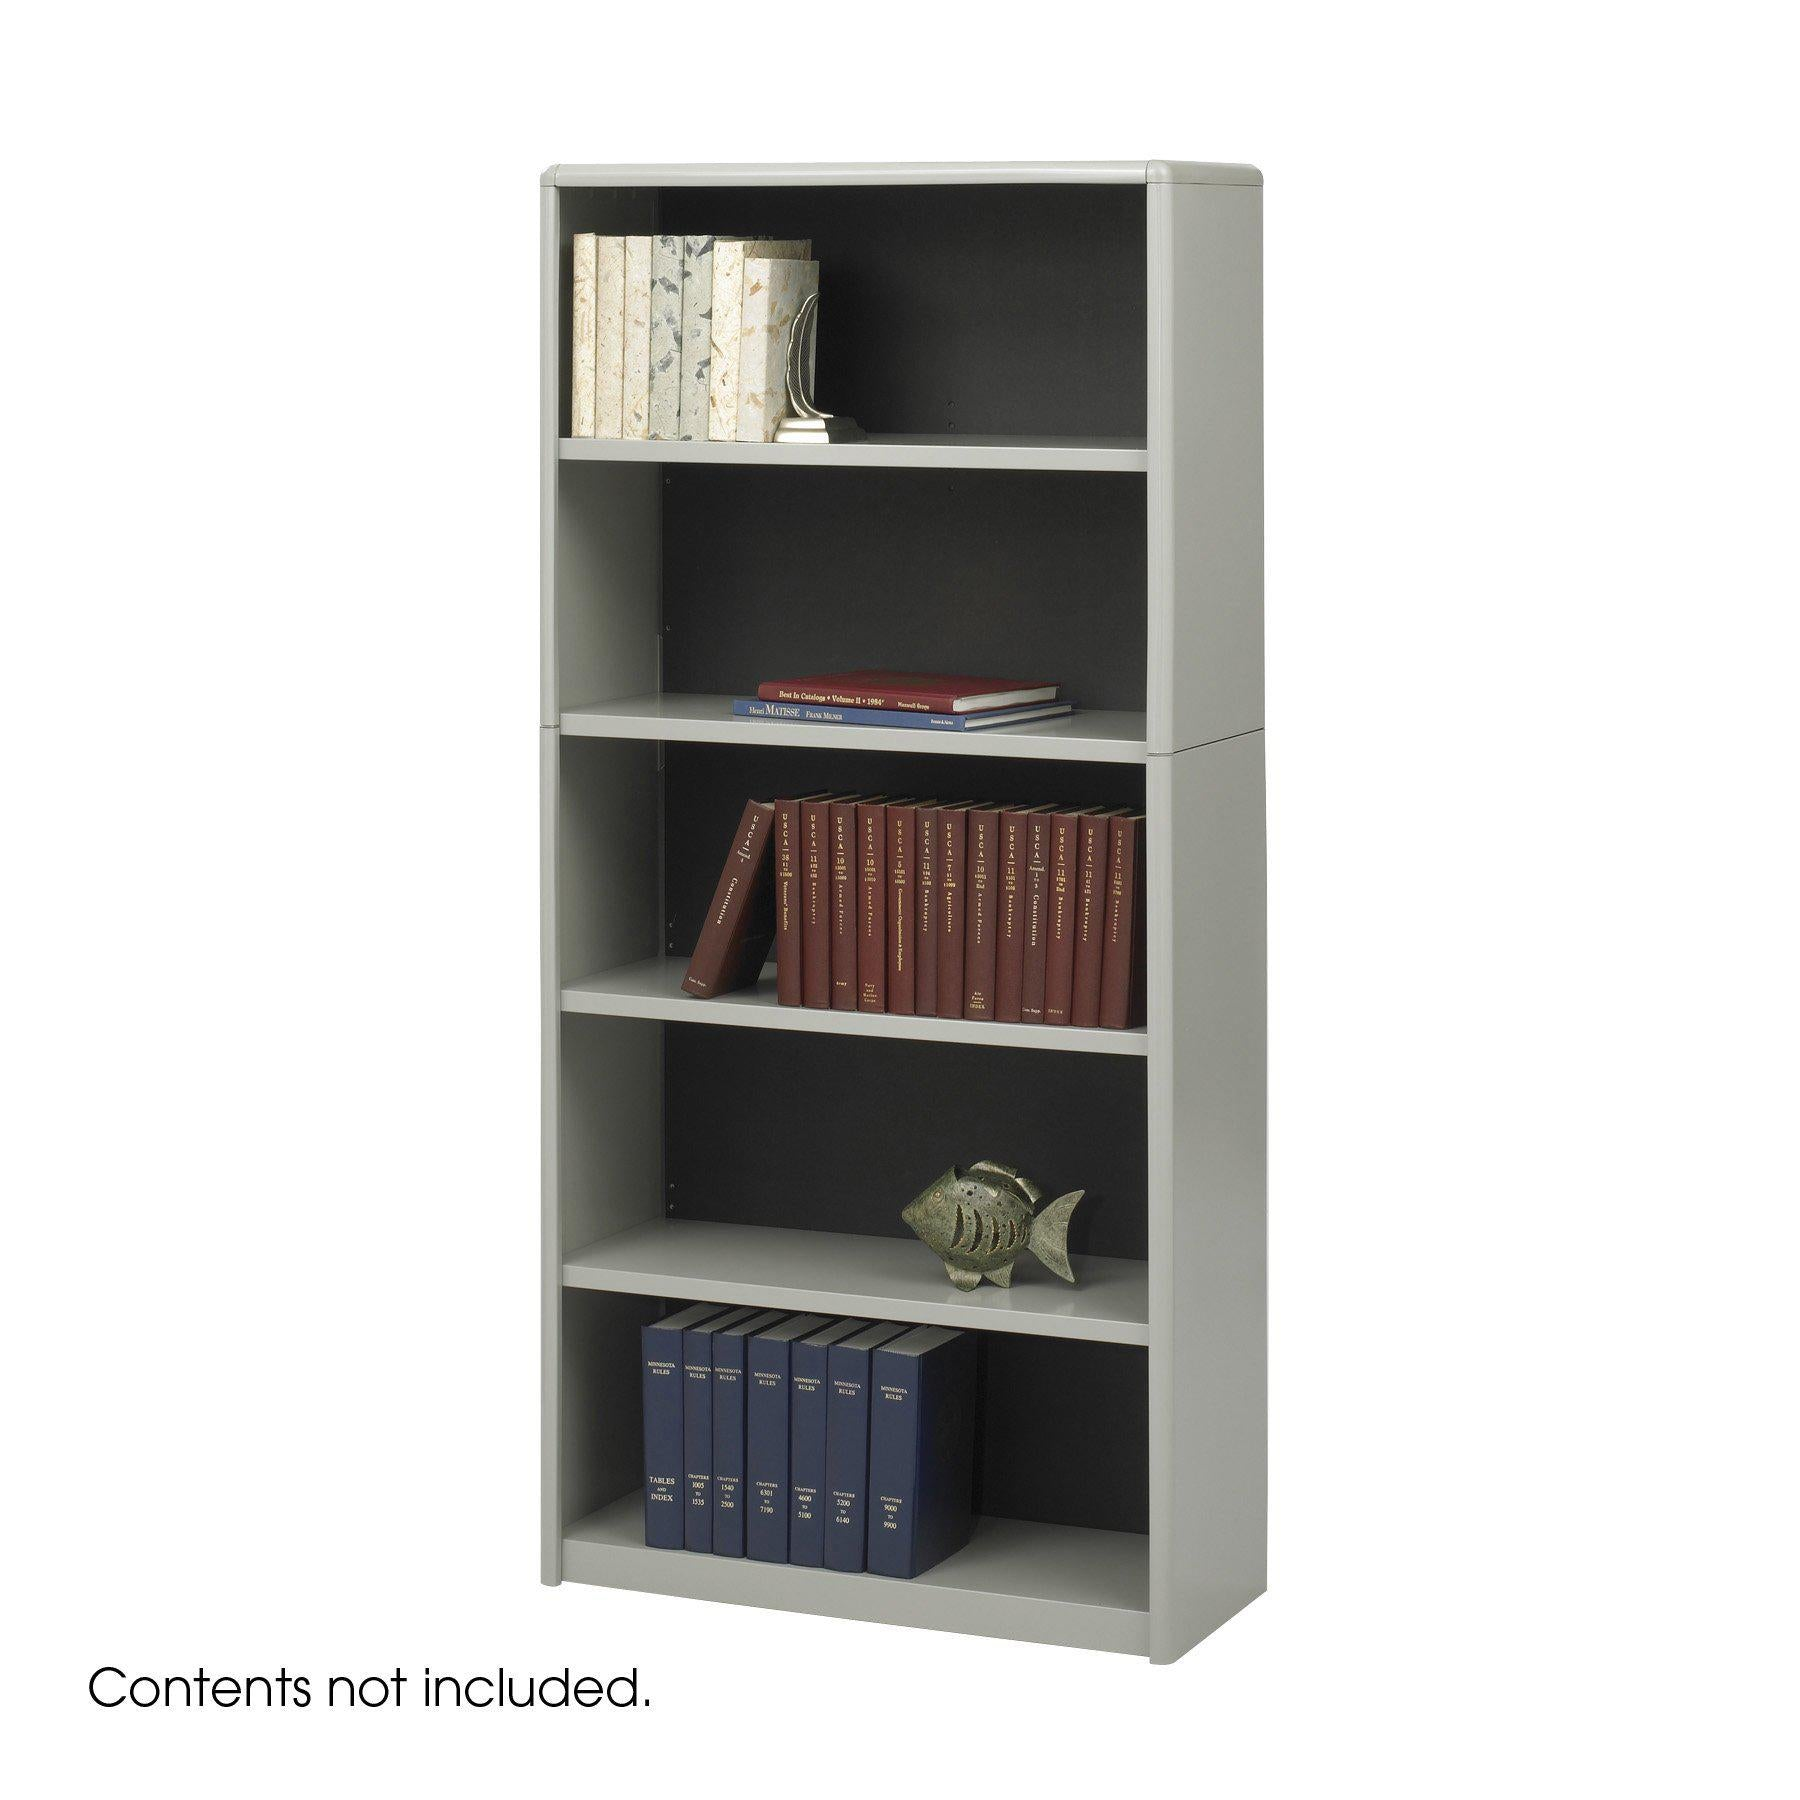 5-Shelf ValueMate® Economy Bookcase